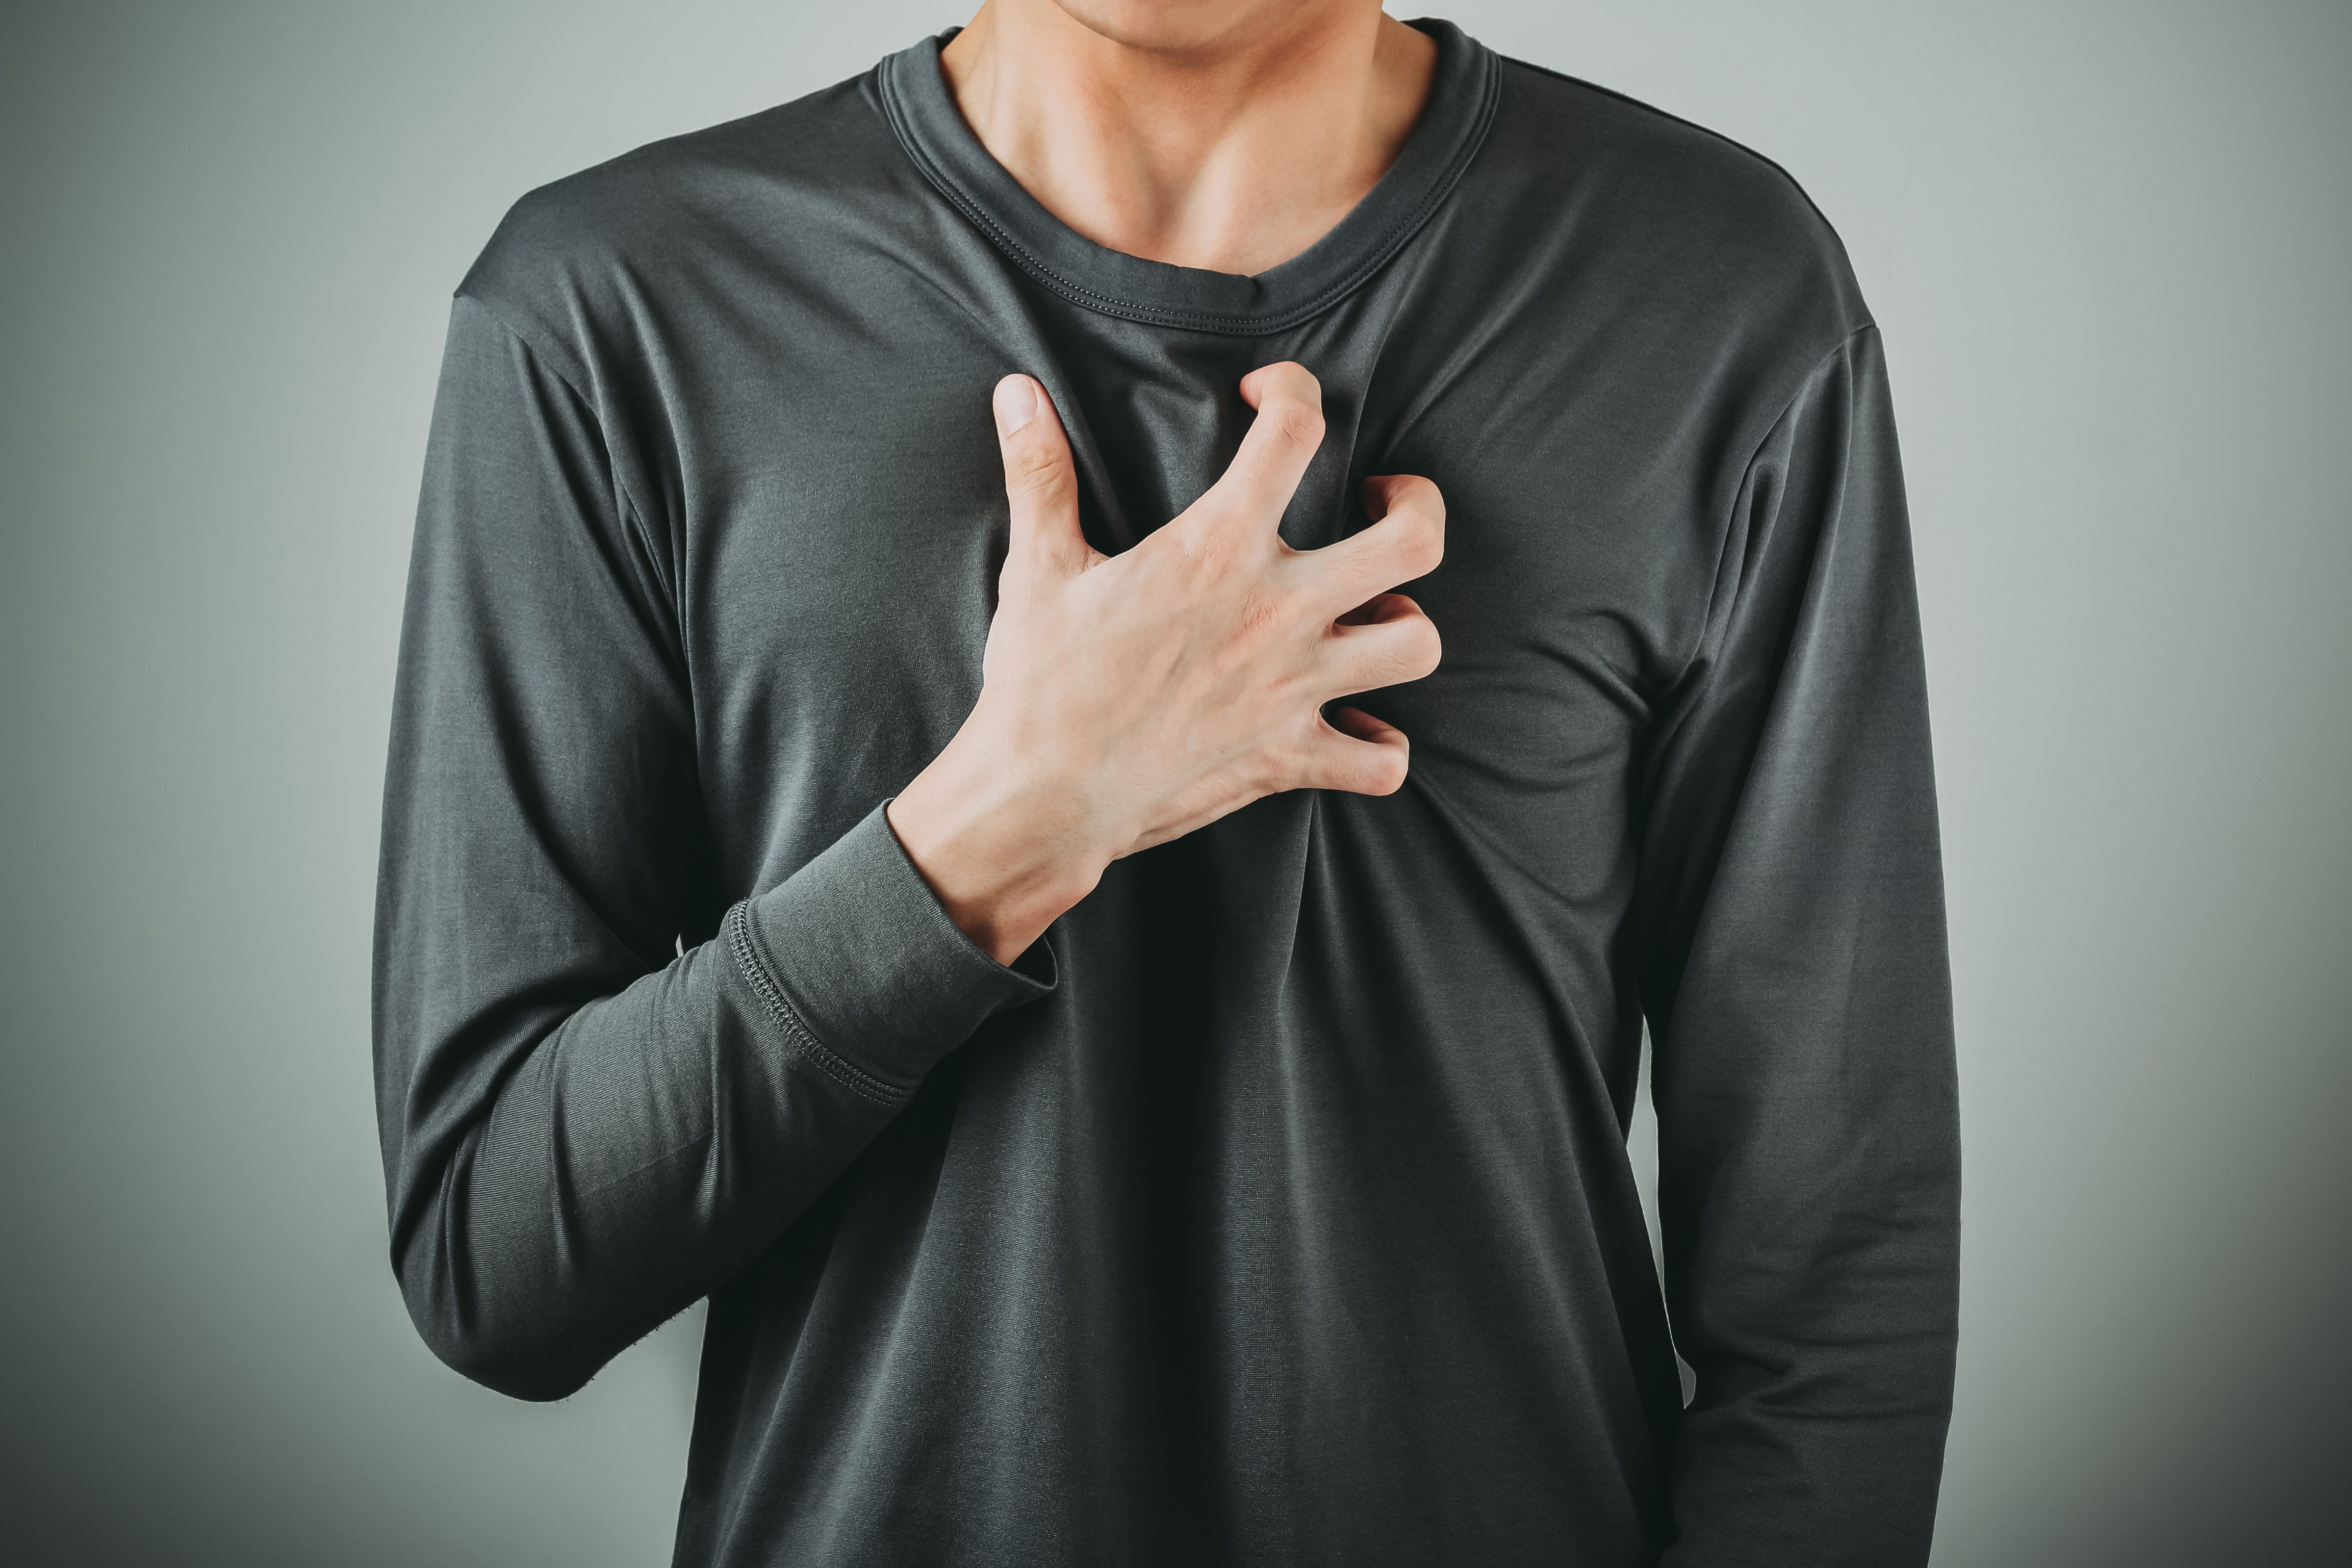 Newly Discovered Symptom Is Sure Sign A Heart Attack Could Be